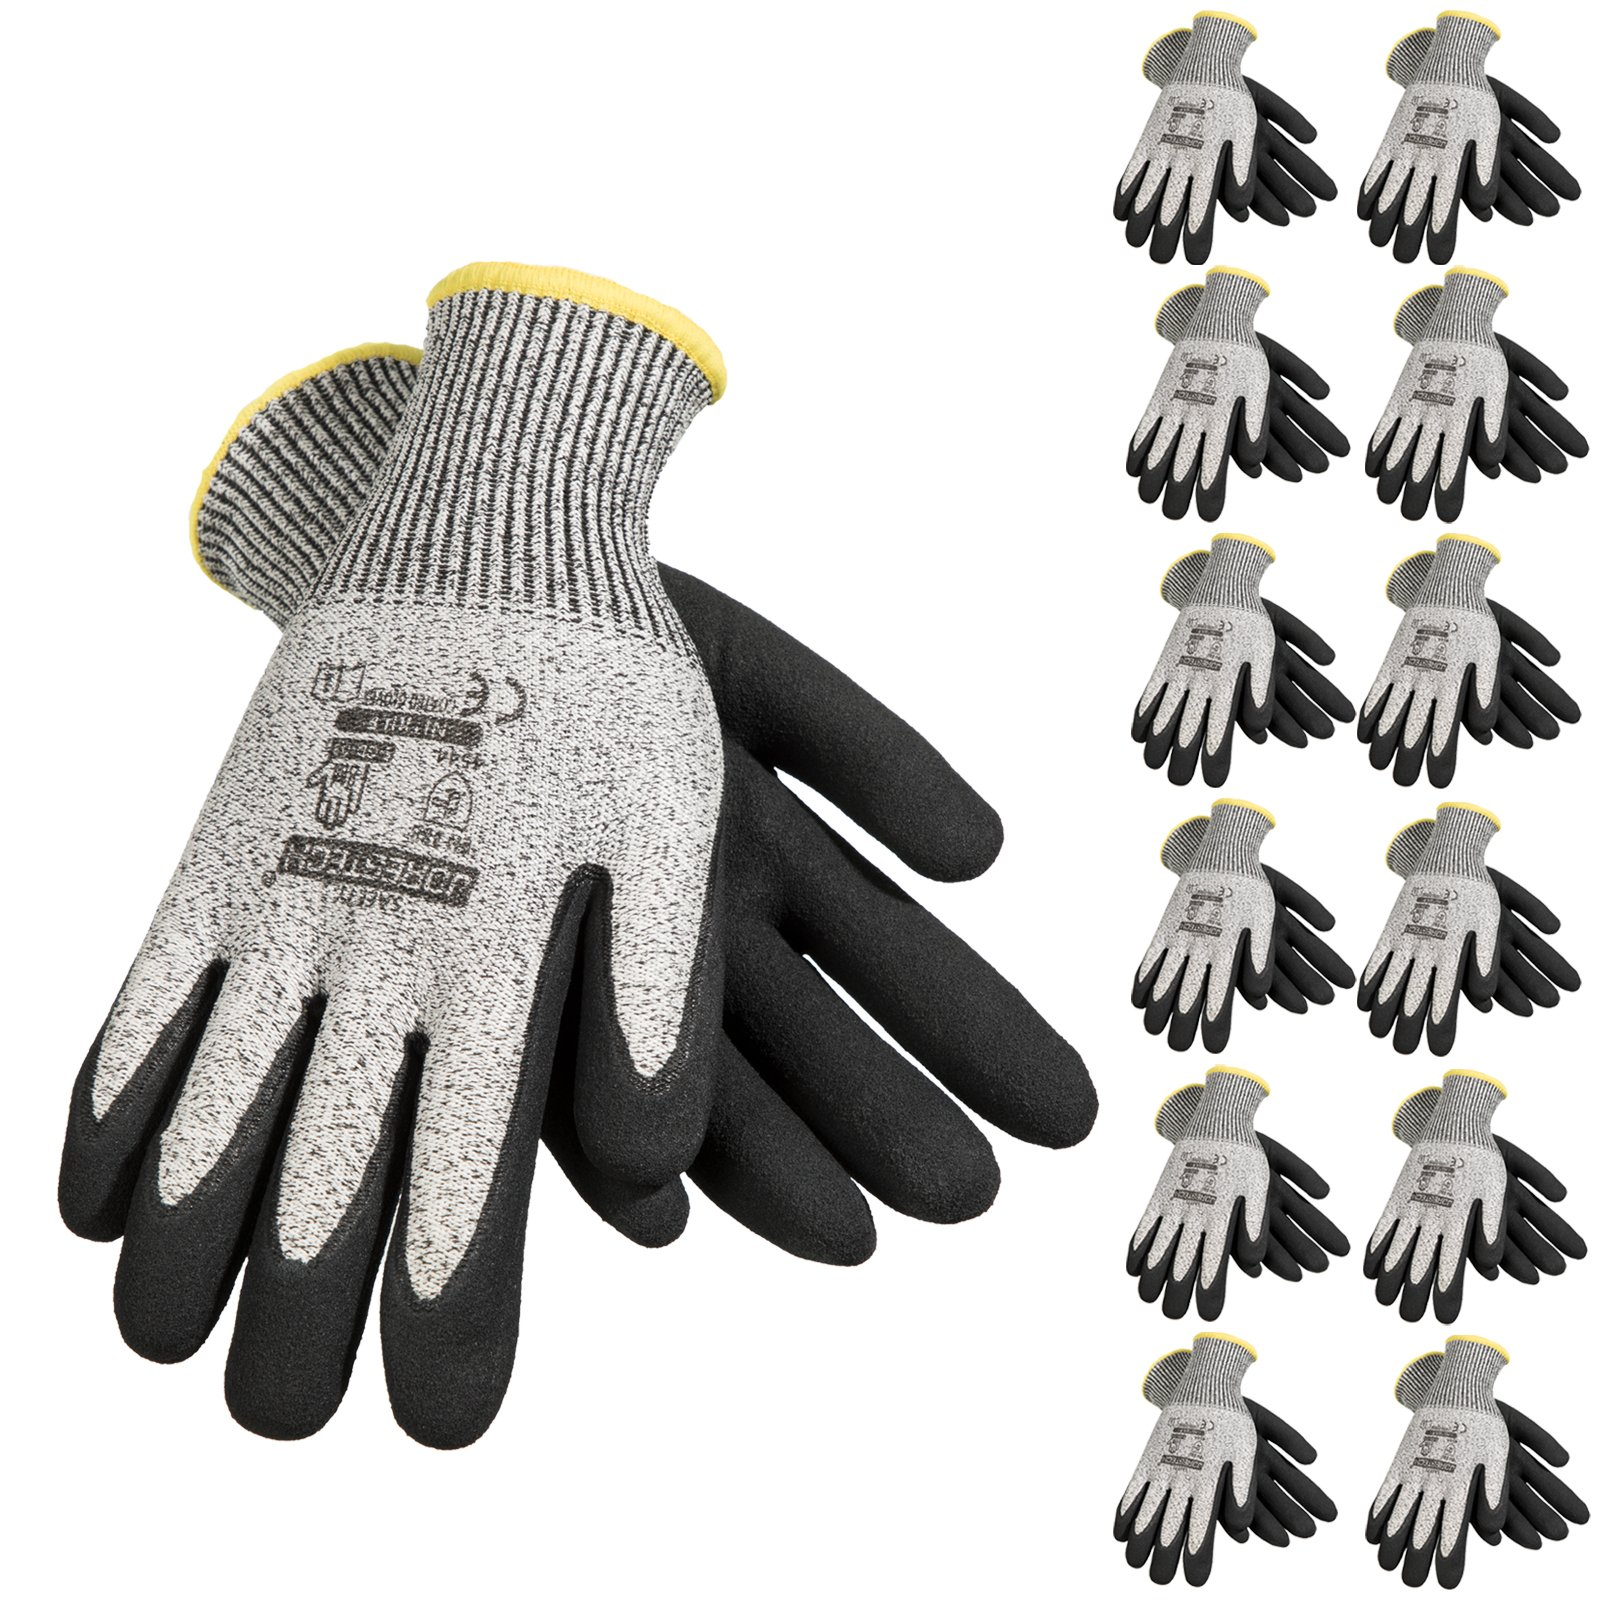 JORESTECH Palm Dipped Nitrile Coated Seamless Knit Work Gloves PPE Hand Protection Blade Cut Resistance Level 5 (Extra Large) Pack of 12,Black, Grey